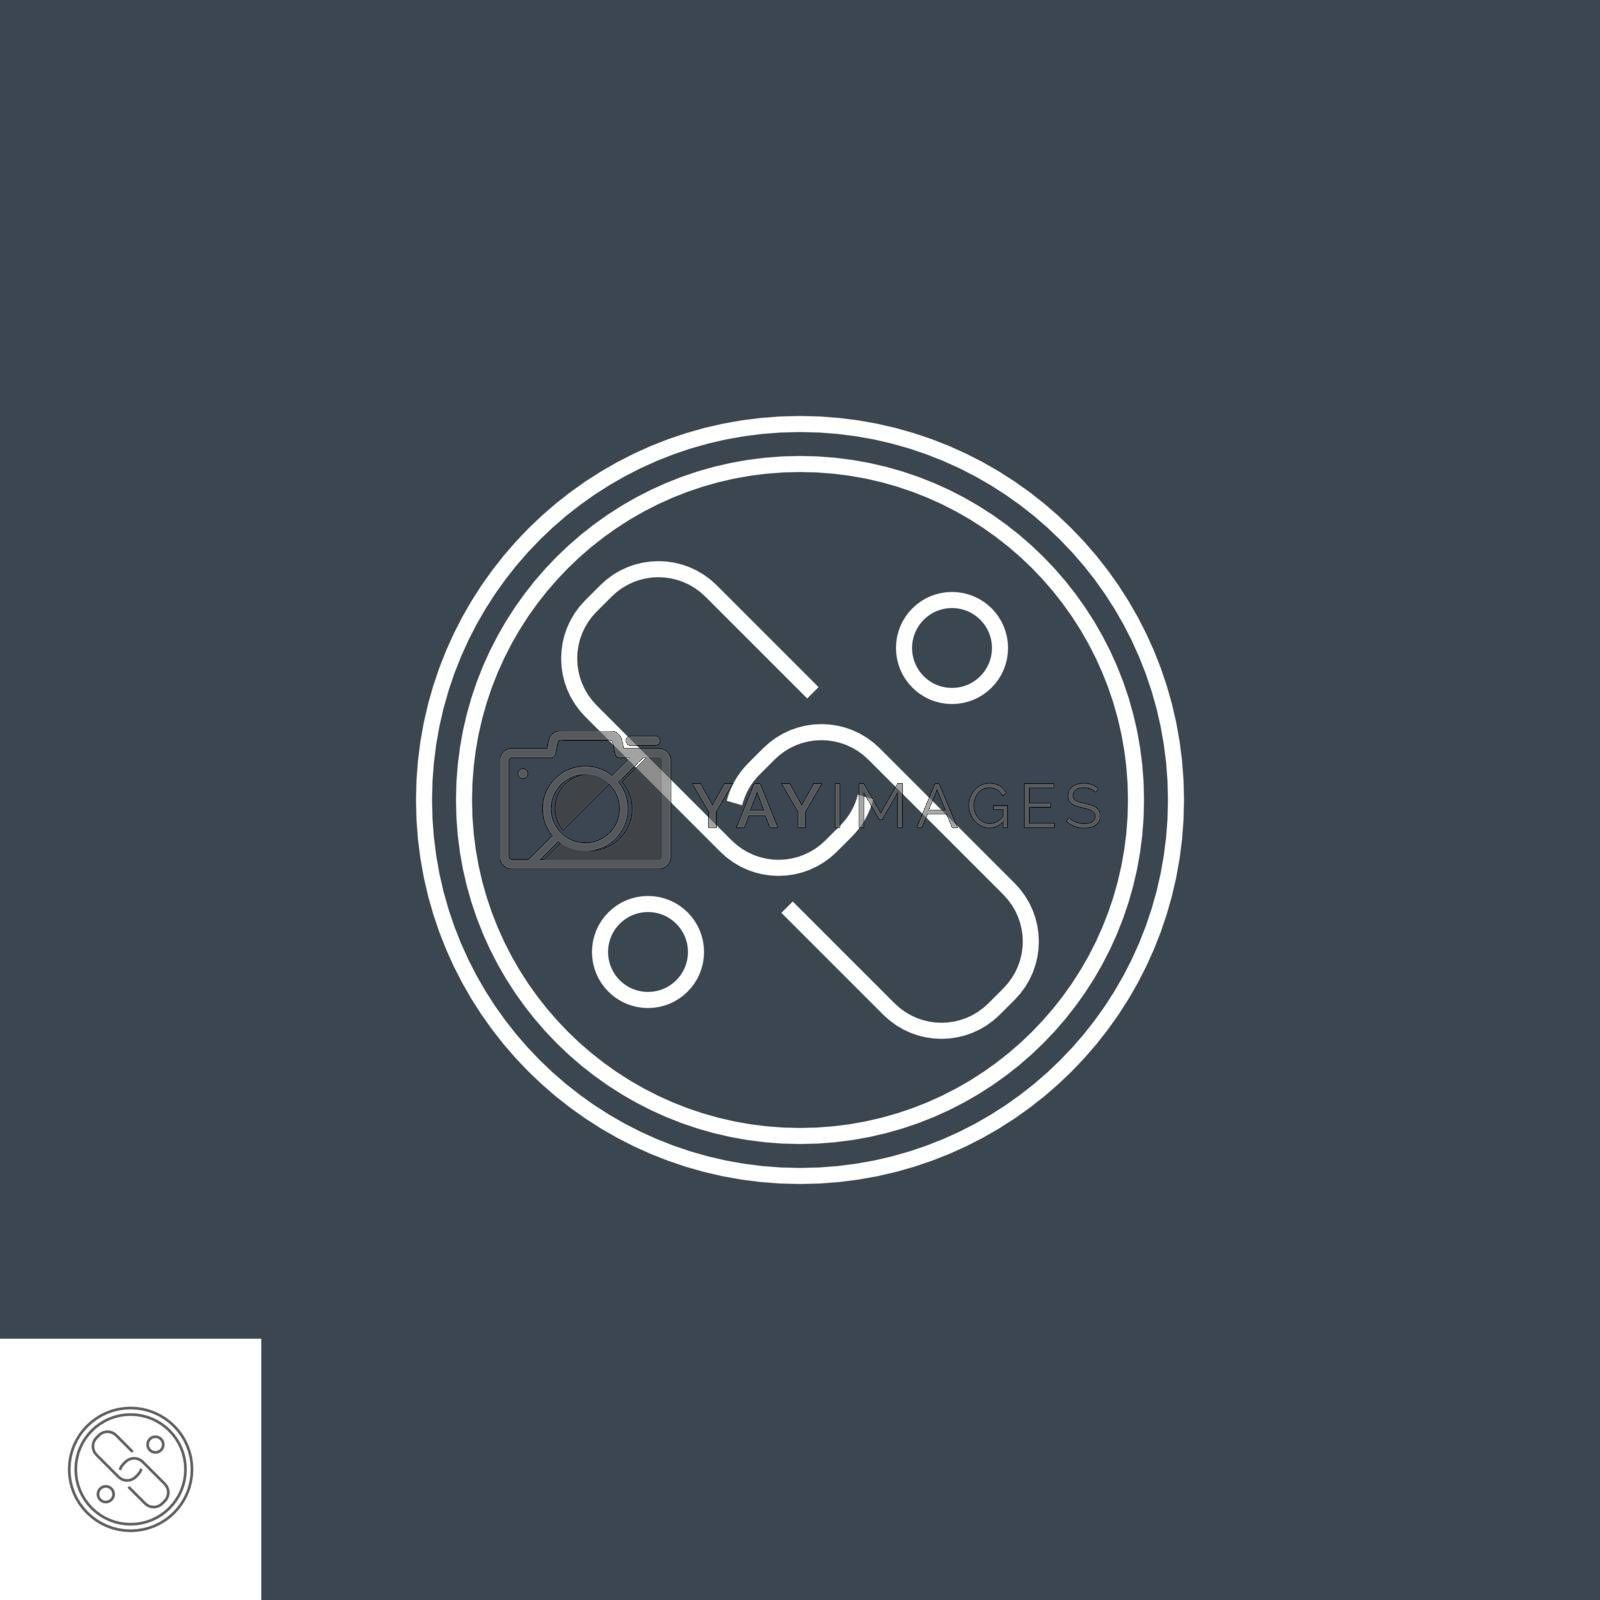 Link Related Vector Thin Line Icon. Isolated on Black Background. Editable Stroke. Vector Illustration.